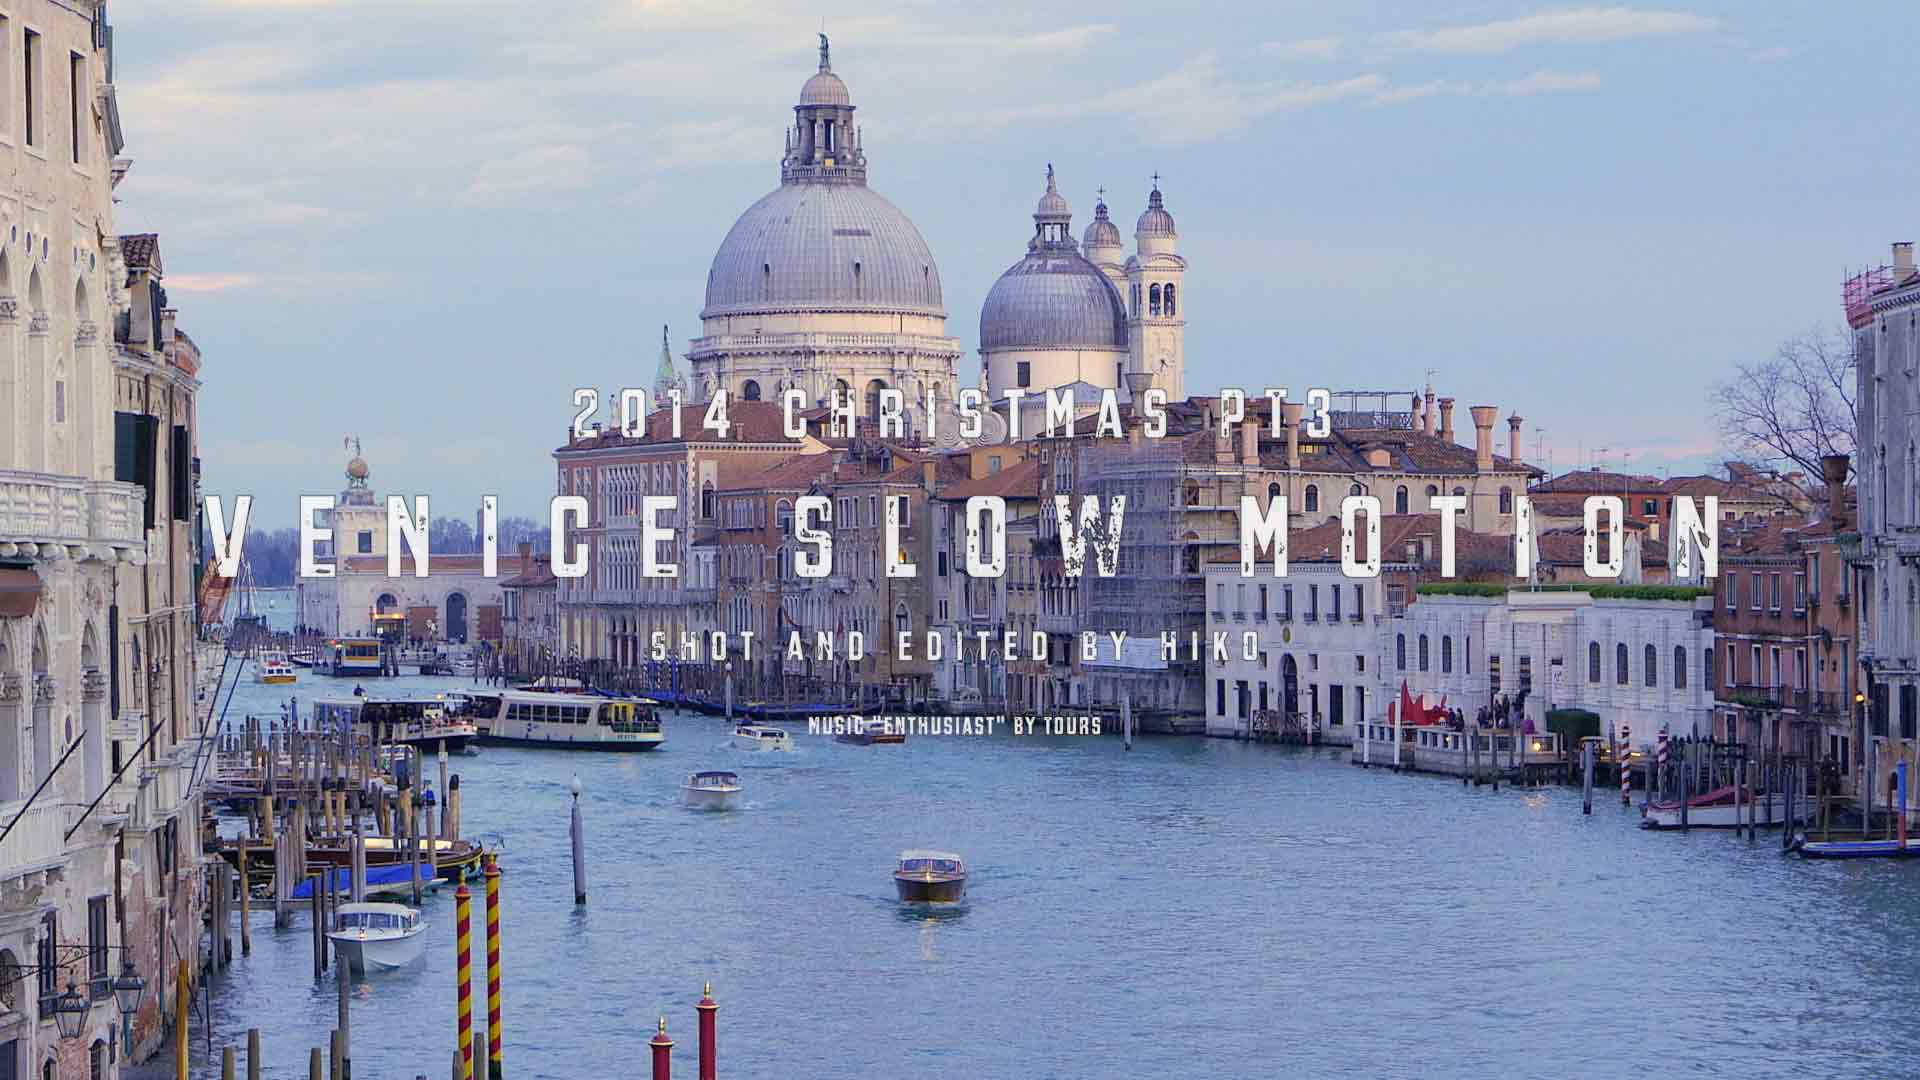 Venice-Slow-Motion-Featured-Image